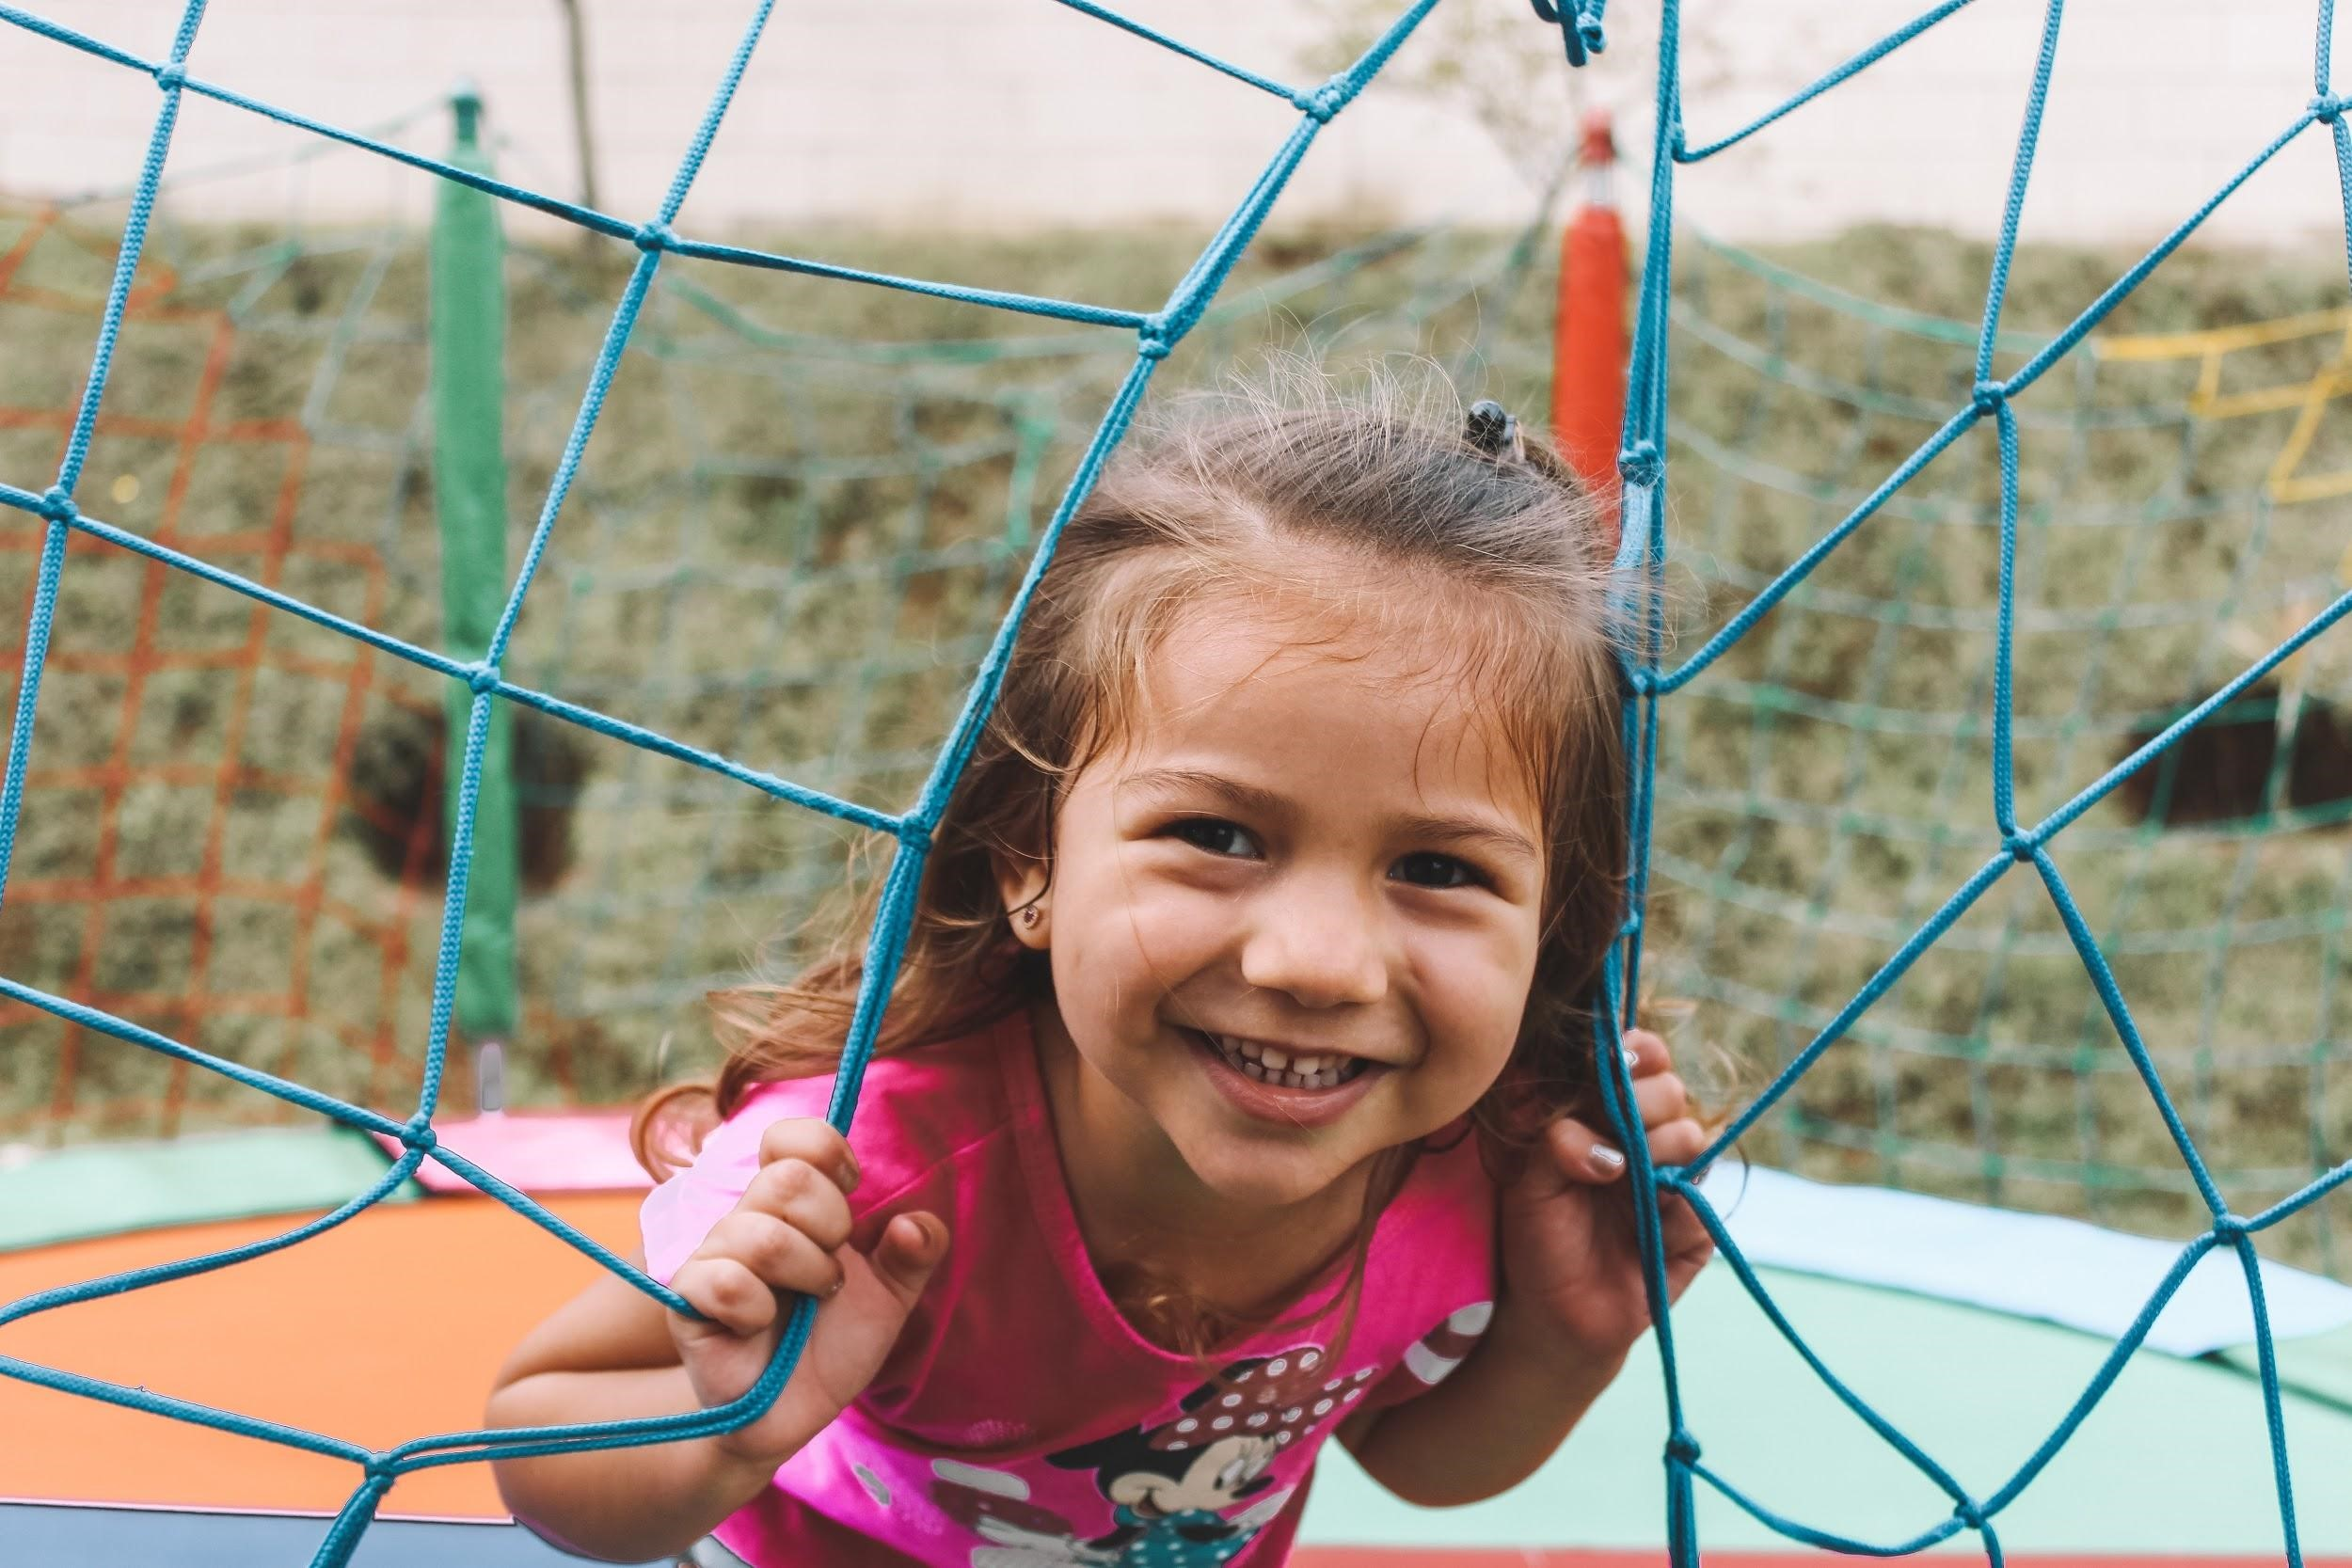 4 Tips To Keep Kids Safe When Playing Outside